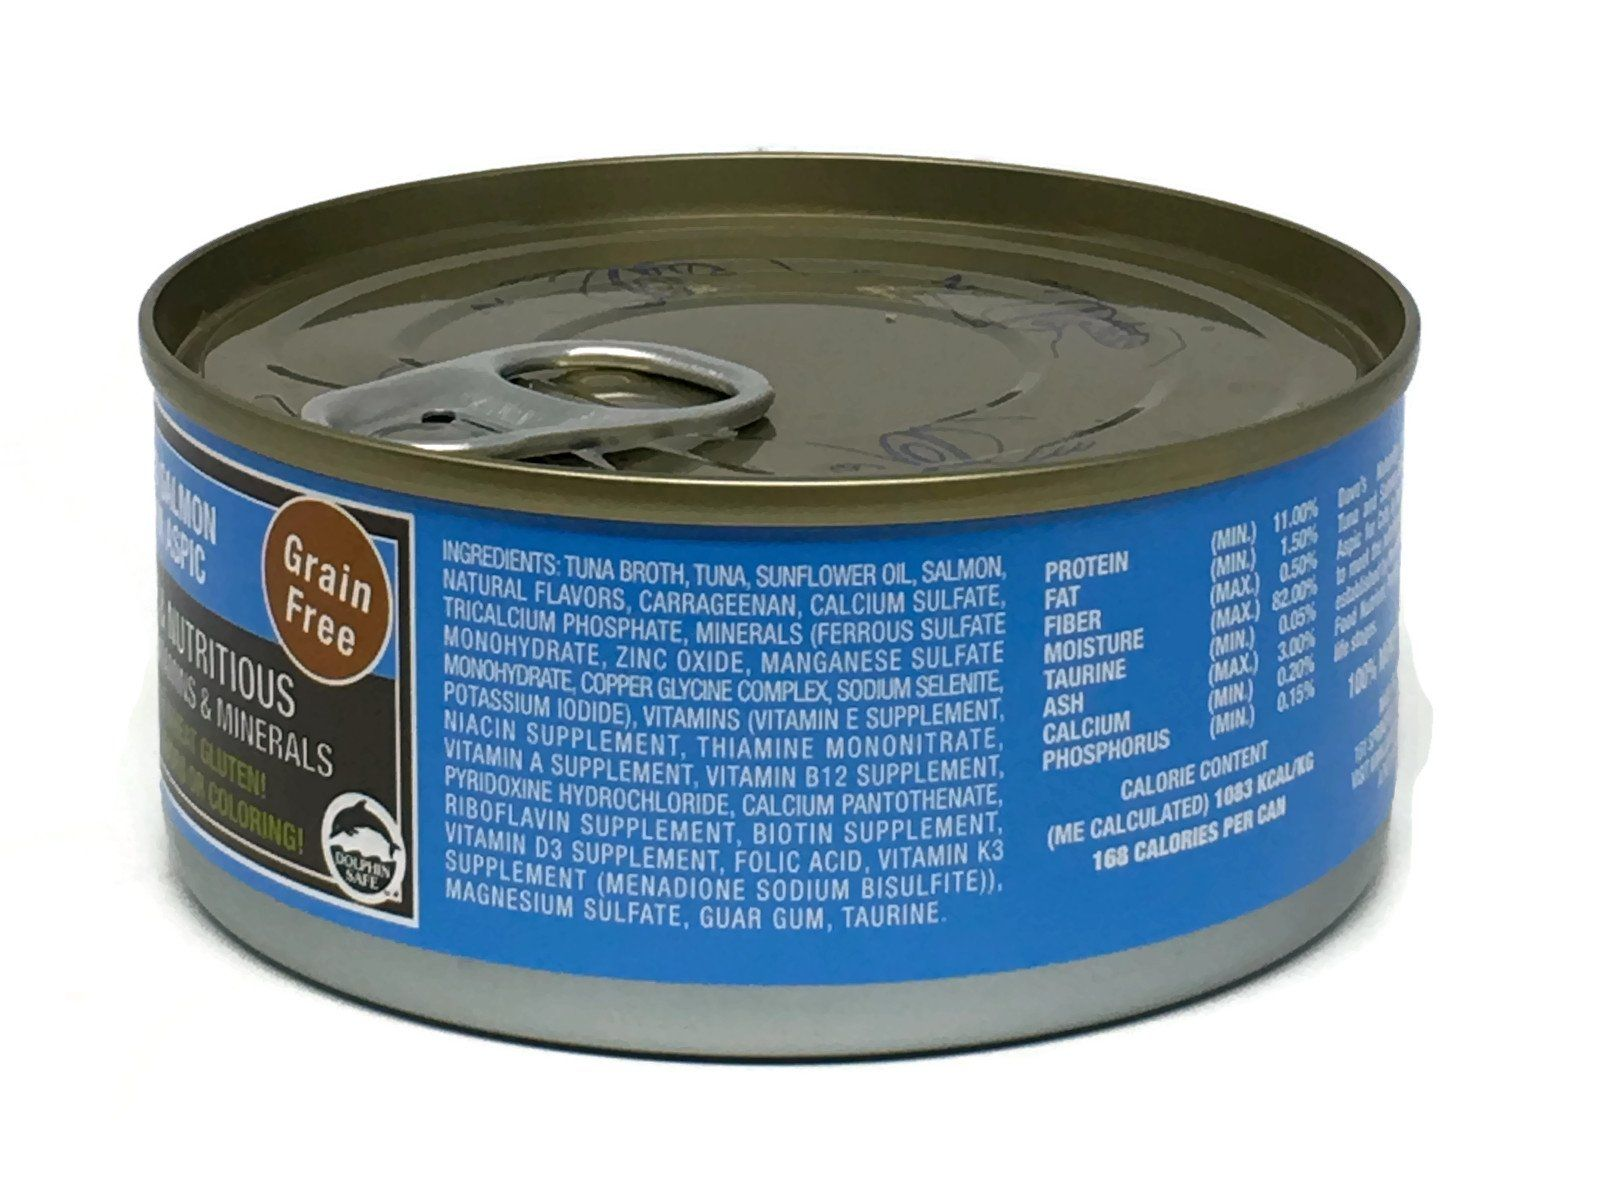 Daves Naturally Healthy Grain Free Canned Cat Food in 3